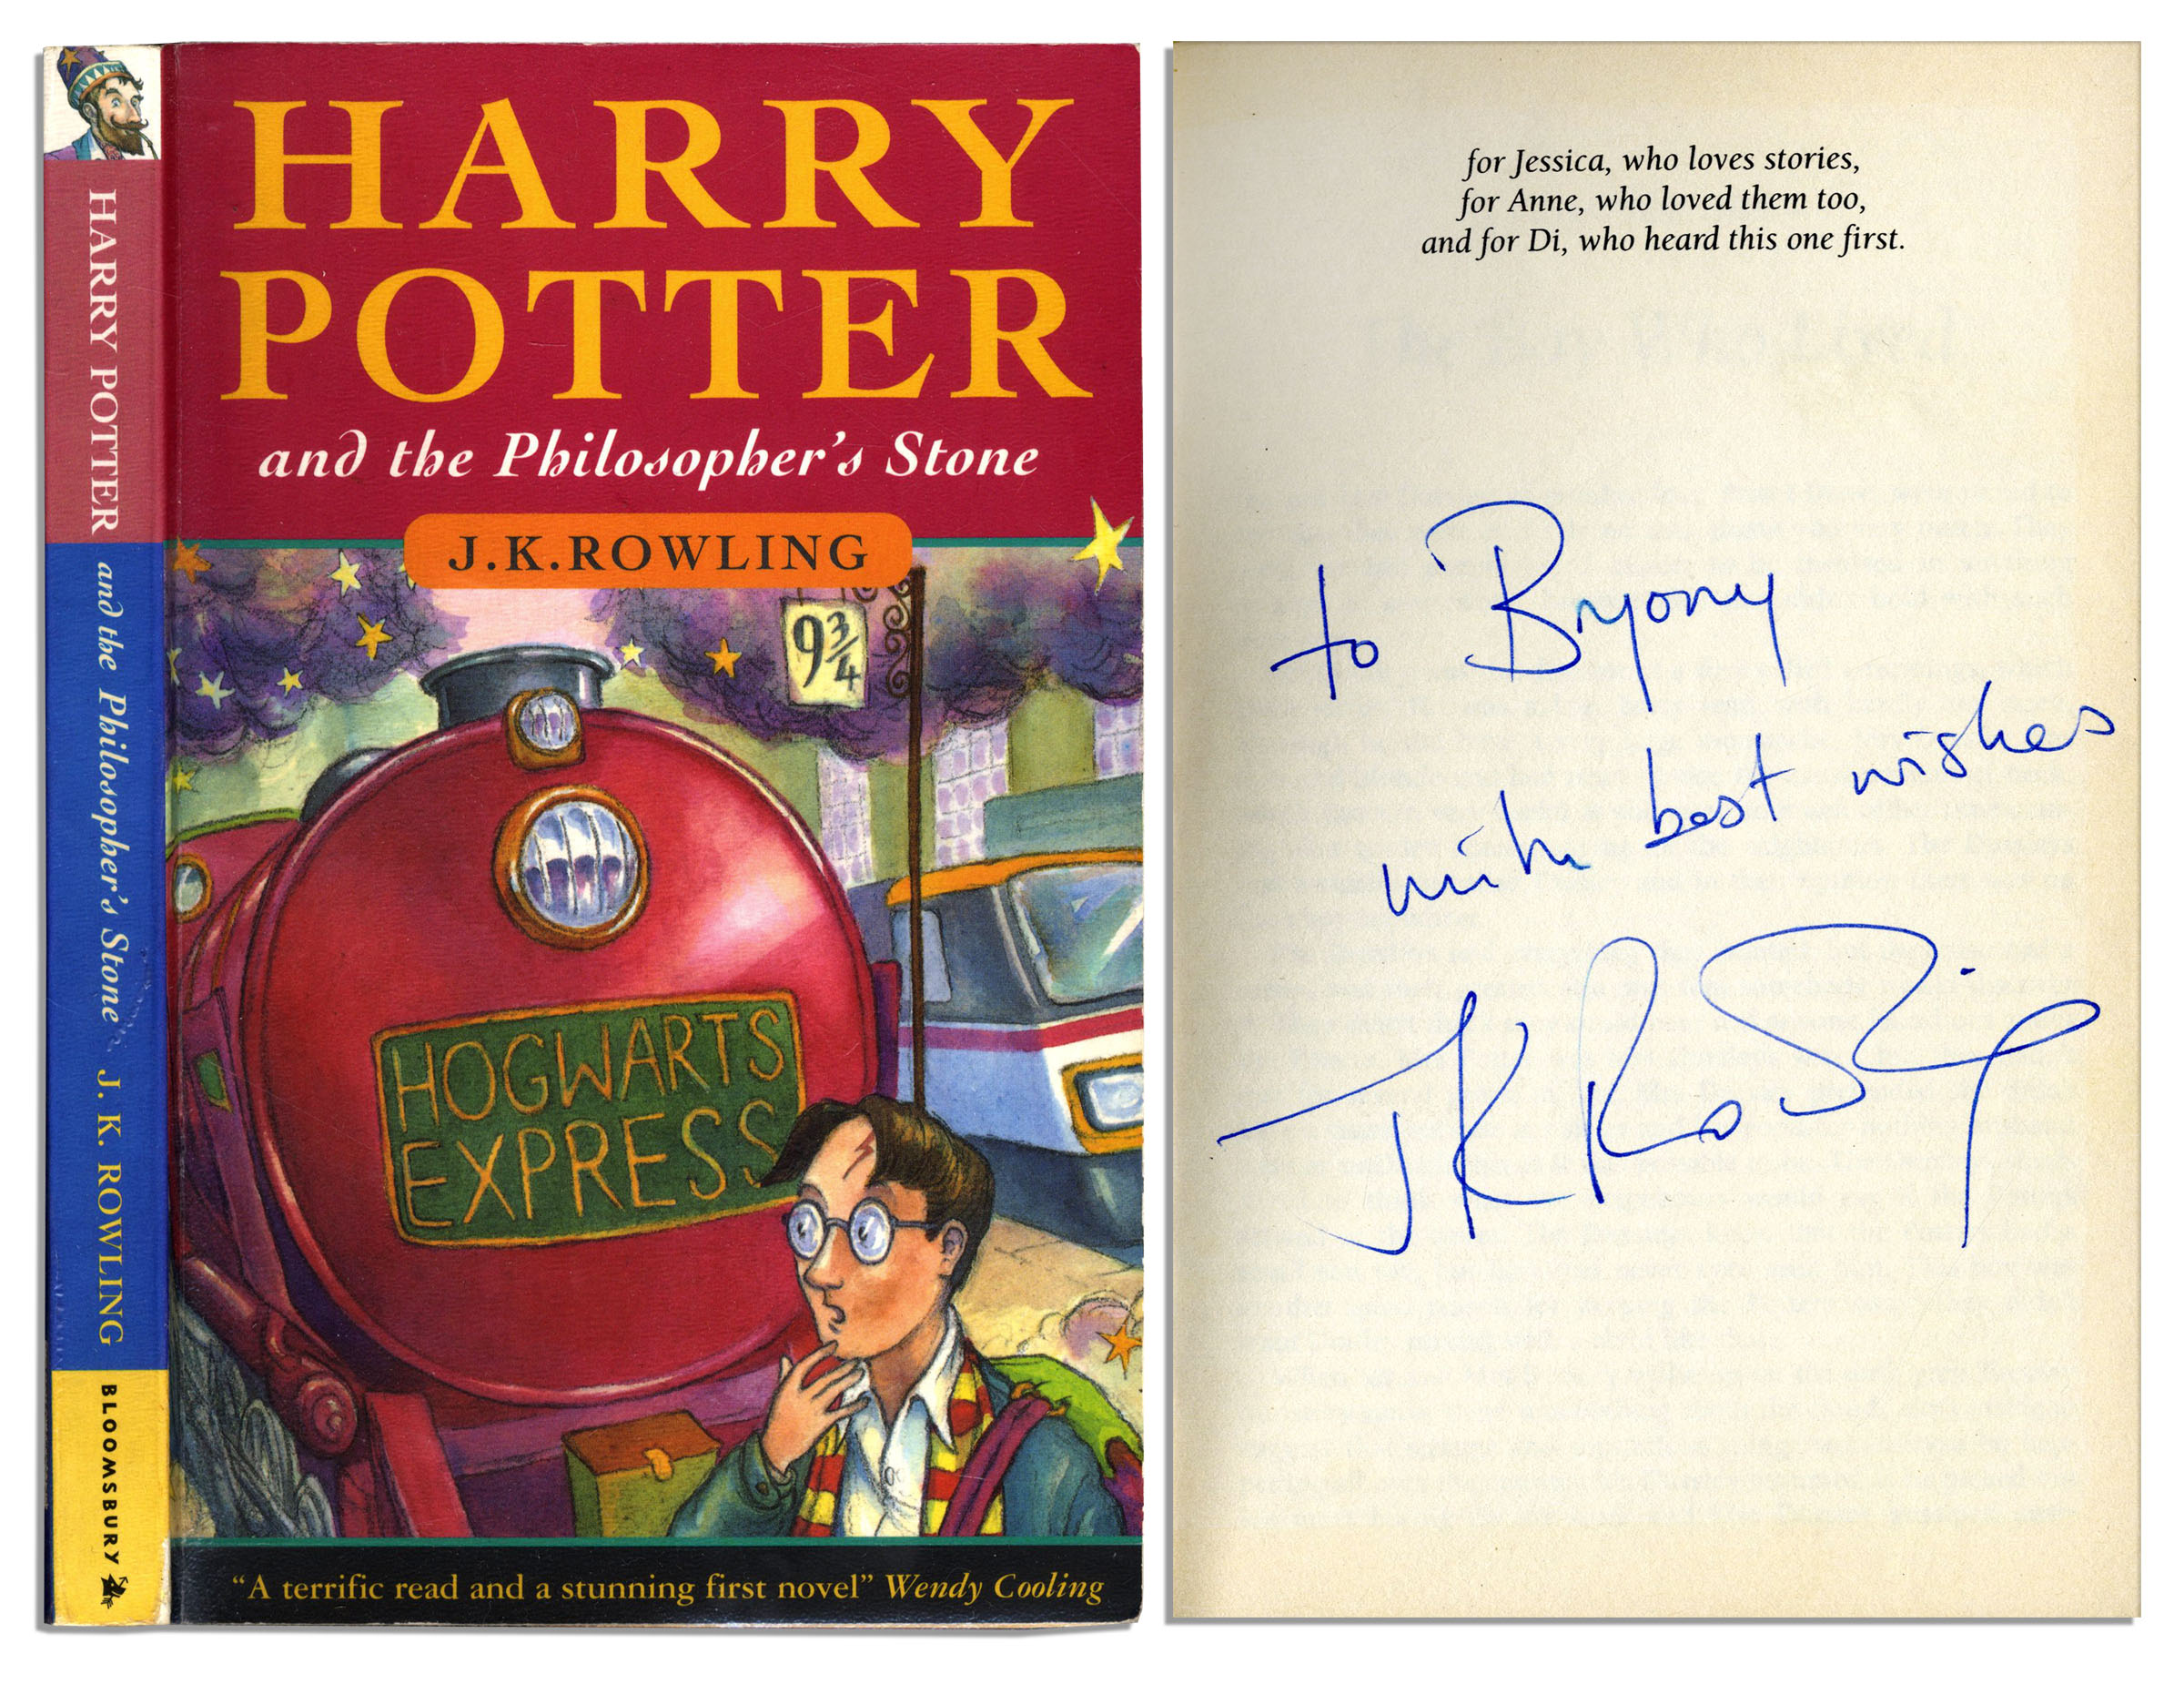 Sell Your Harry Potter 1st Edition For 0 Commission 80000